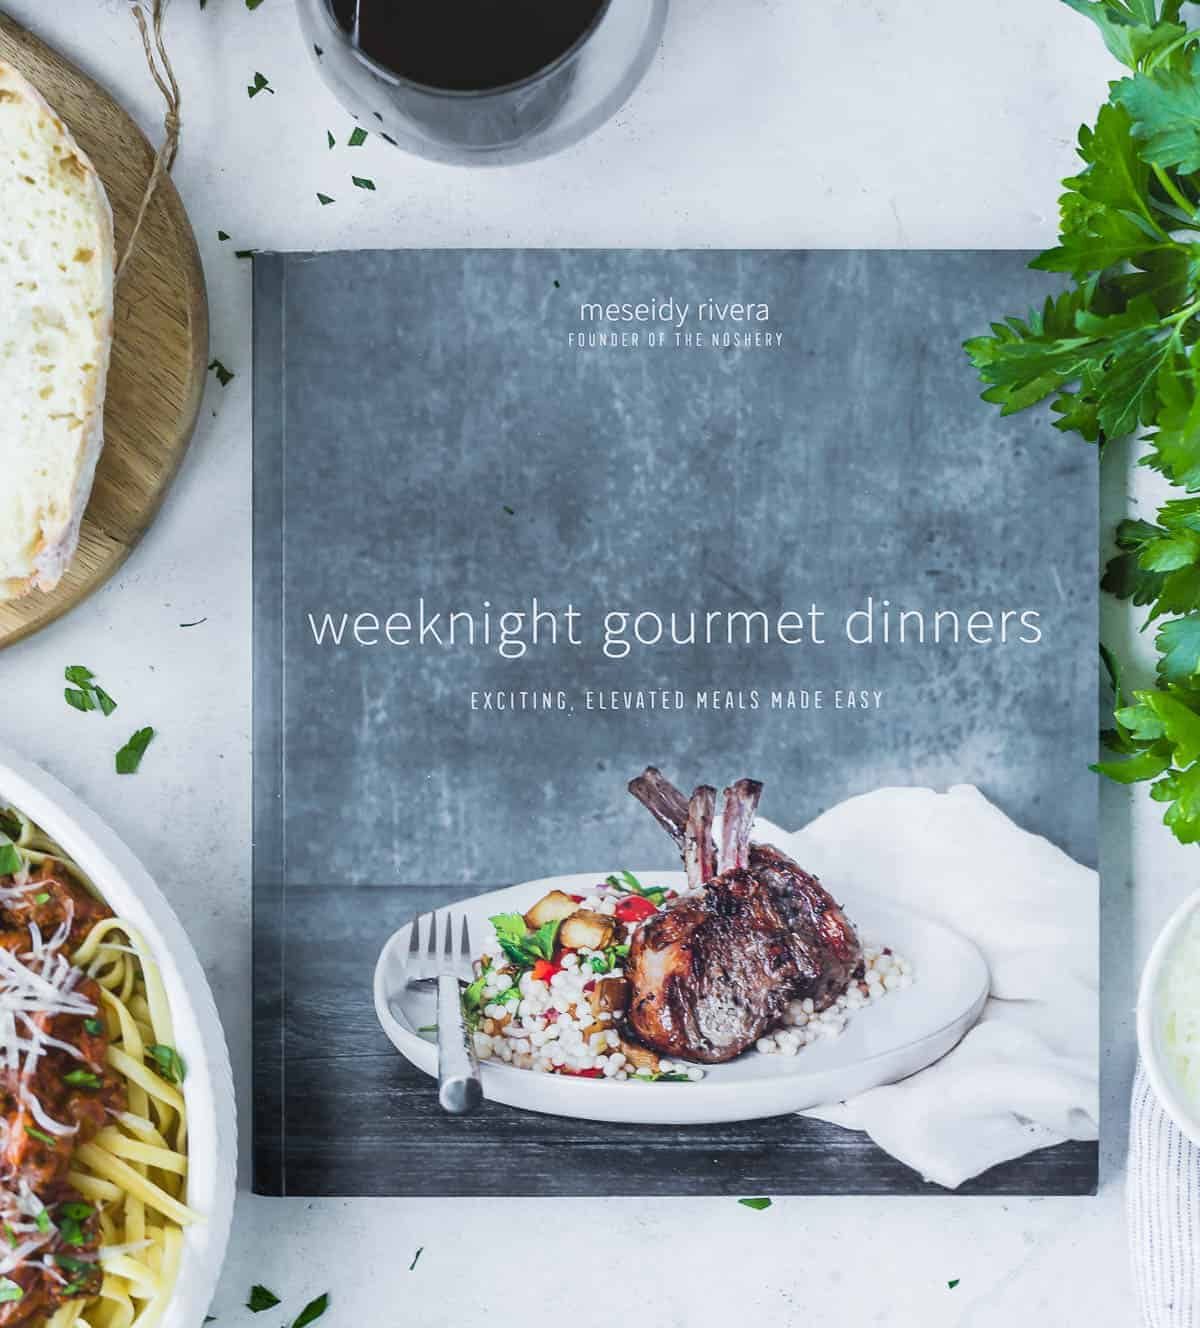 Weeknight Gourmet Dinners cookbook, surrounded by pasta, bread, and fresh herbs.